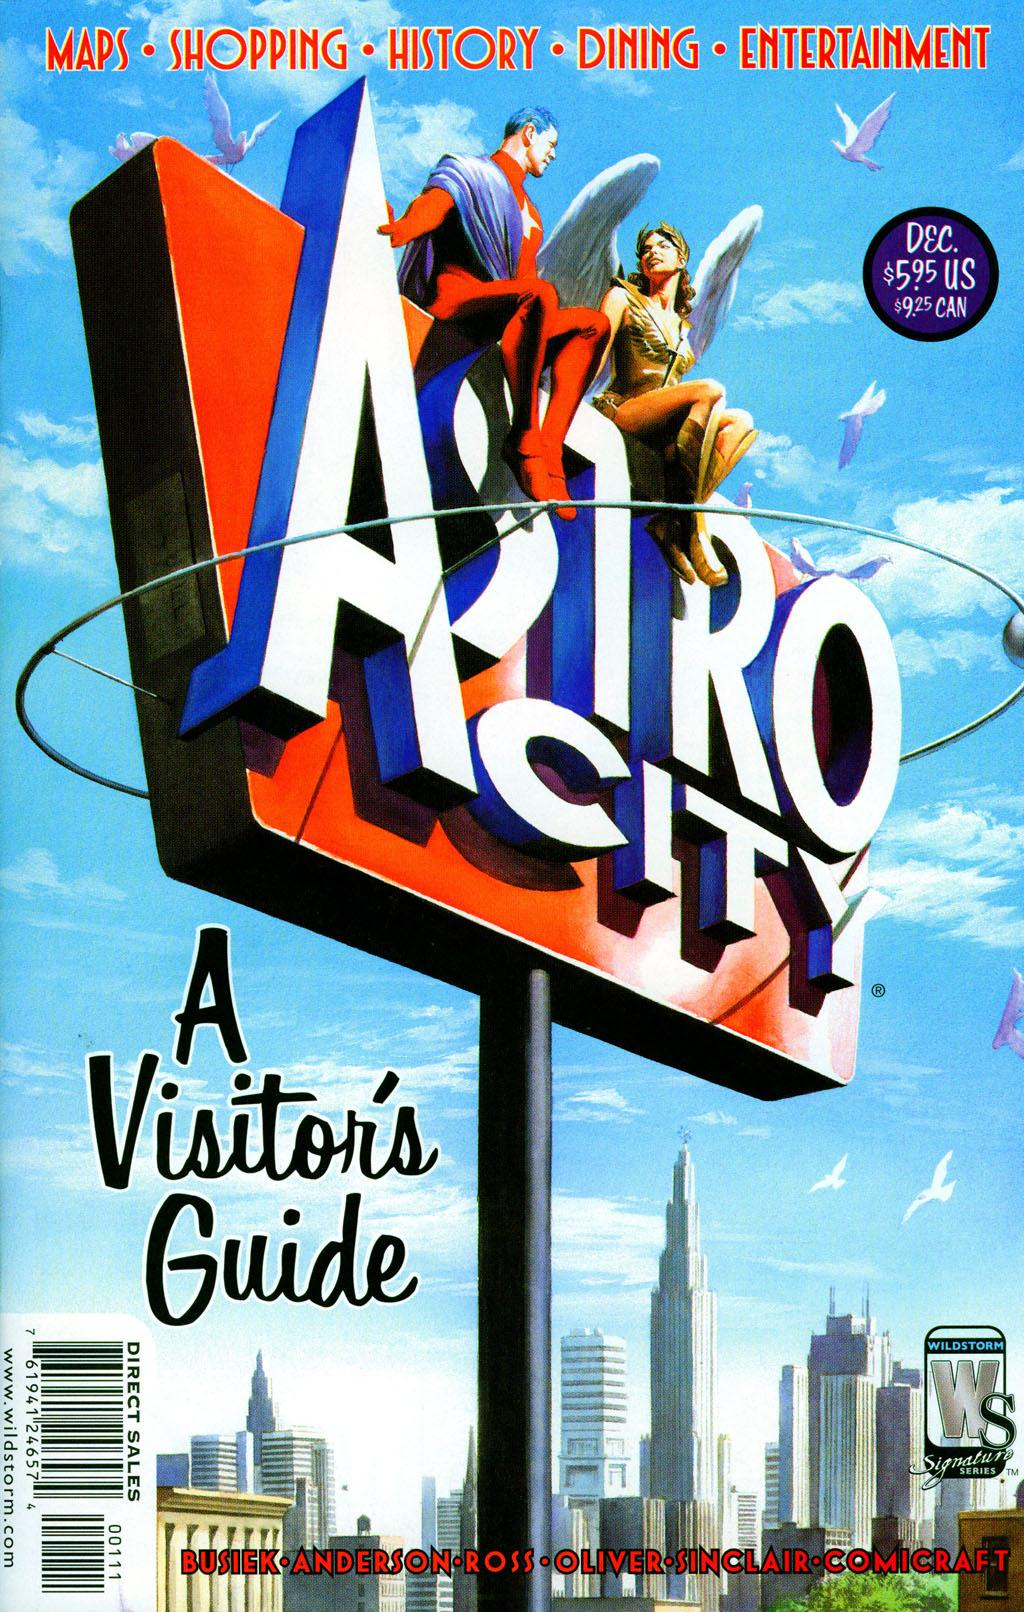 Astro City: A Visitors Guide Vol 1 1